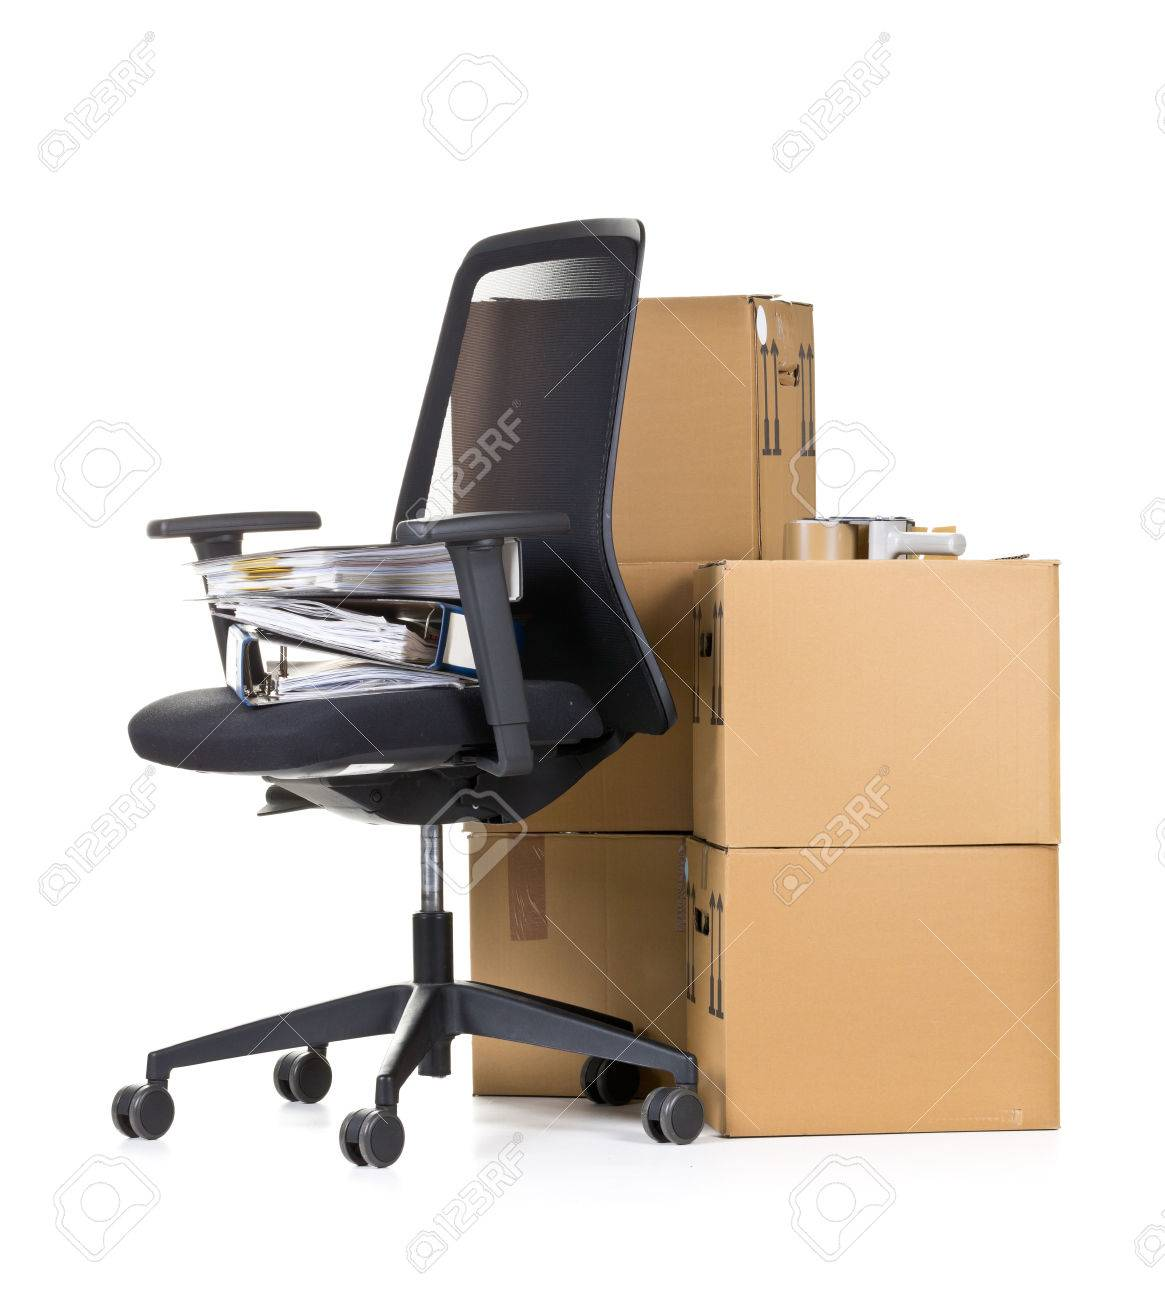 Office folder on office chair in front of moving boxes over white background - office moving or relocation concept Standard-Bild - 53884892